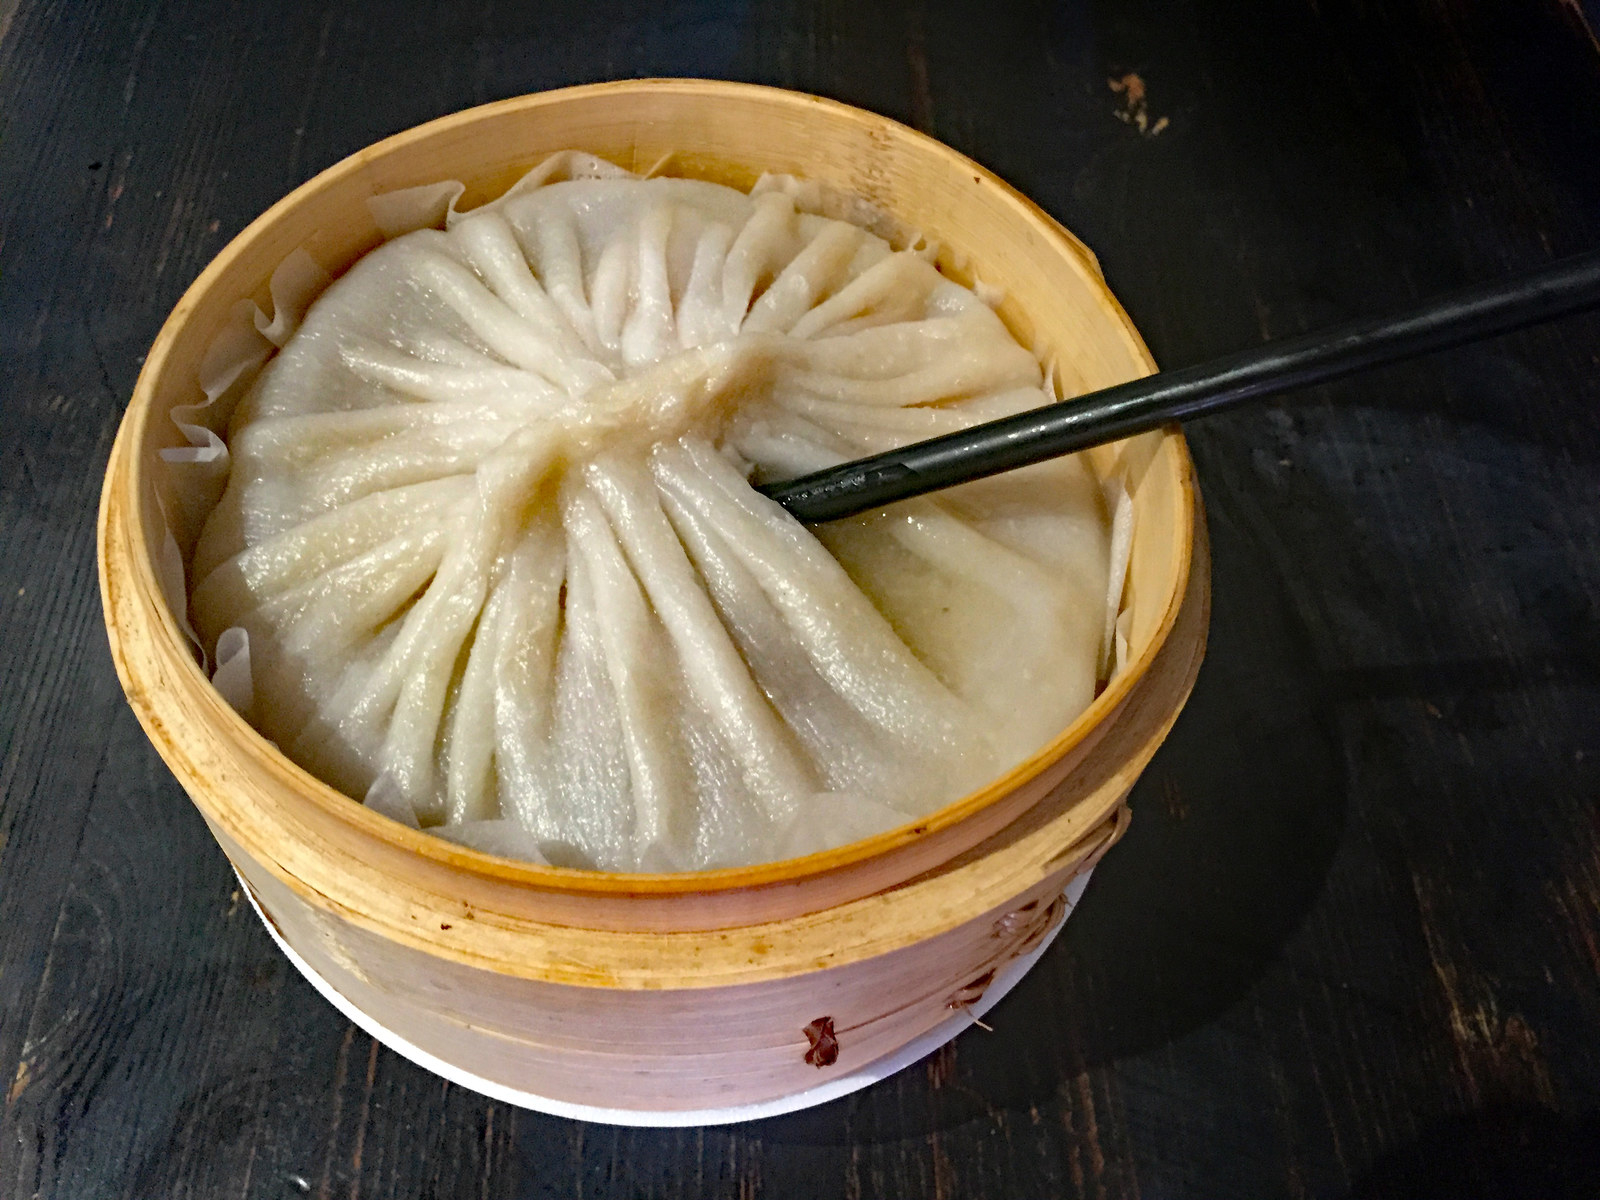 Myung In Dumplings - CLOSED - 246 Photos & 126 Reviews ... |Huge Dumplings